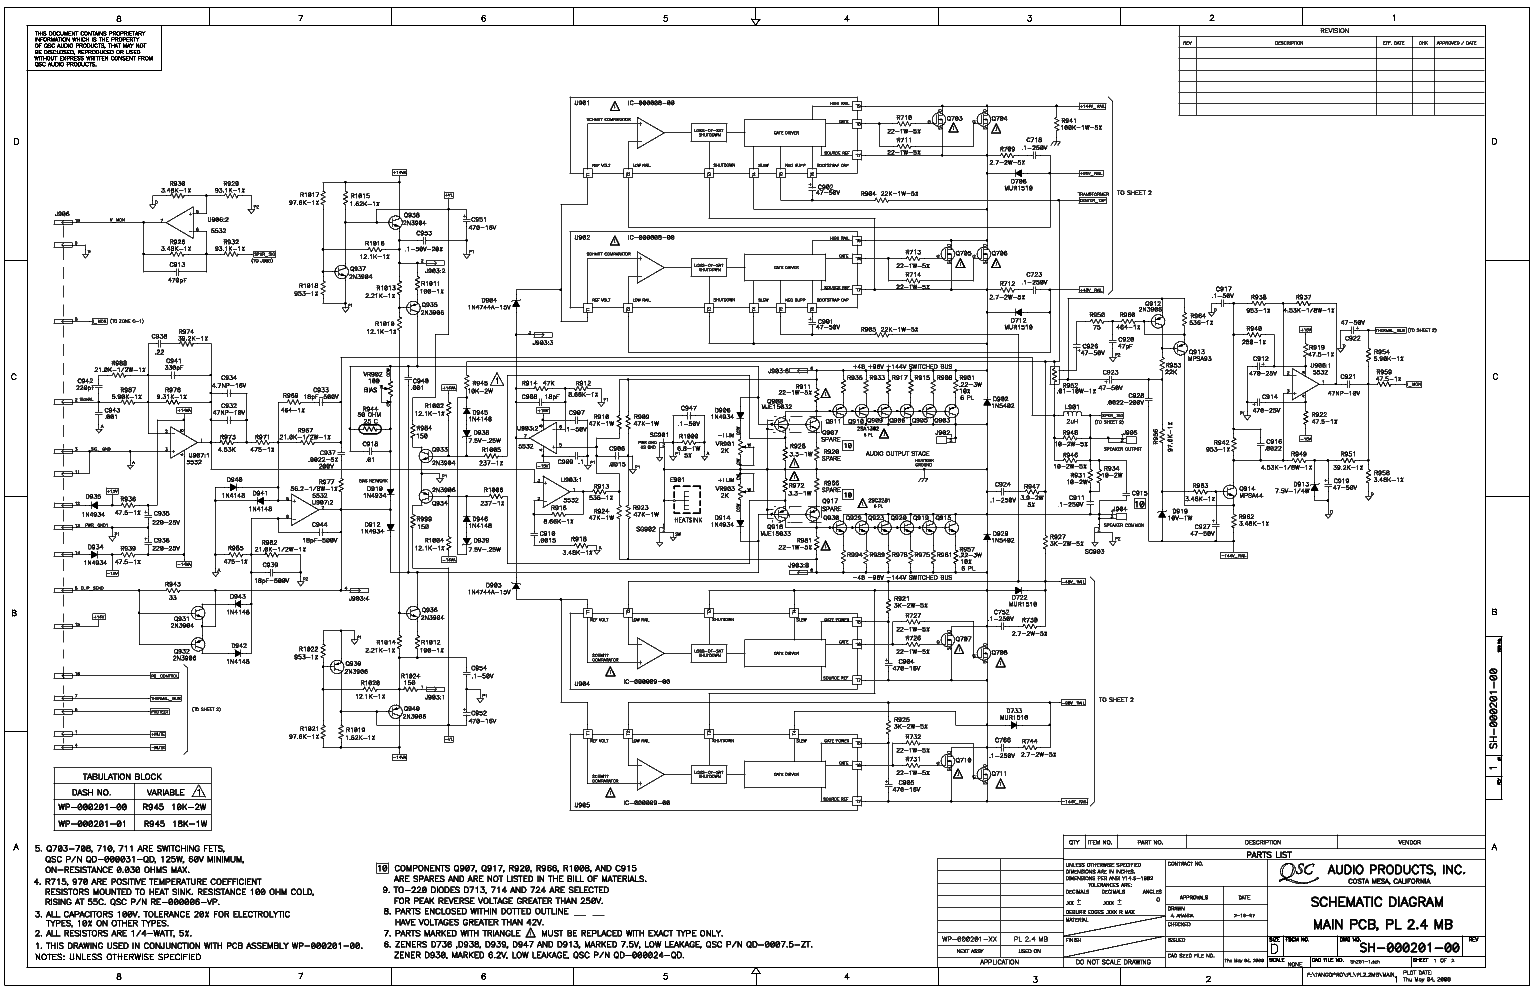 qsc_pl24.pdf_1 Qsc Plx Schematic Diagram on isa 300ti, pl340 power supply, gx 3 amplifier, k-12 ksub, 1400 power amp, k10 speaker, usa 900 amplifier,